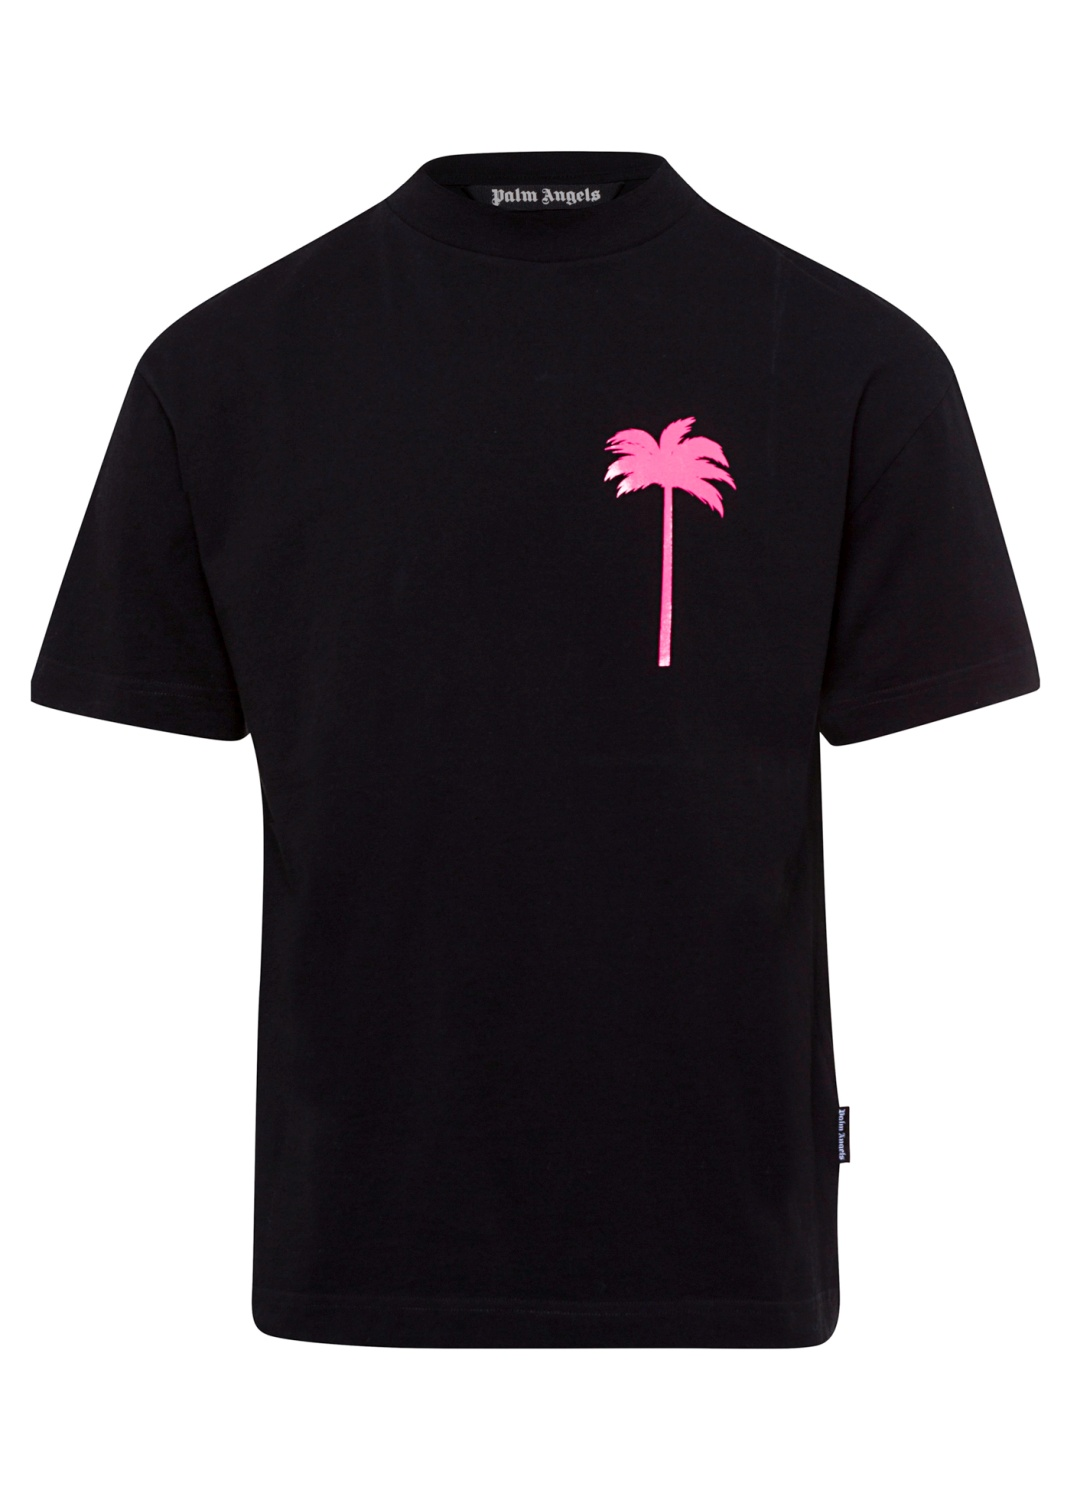 PXP CLASSIC TEE image number 0